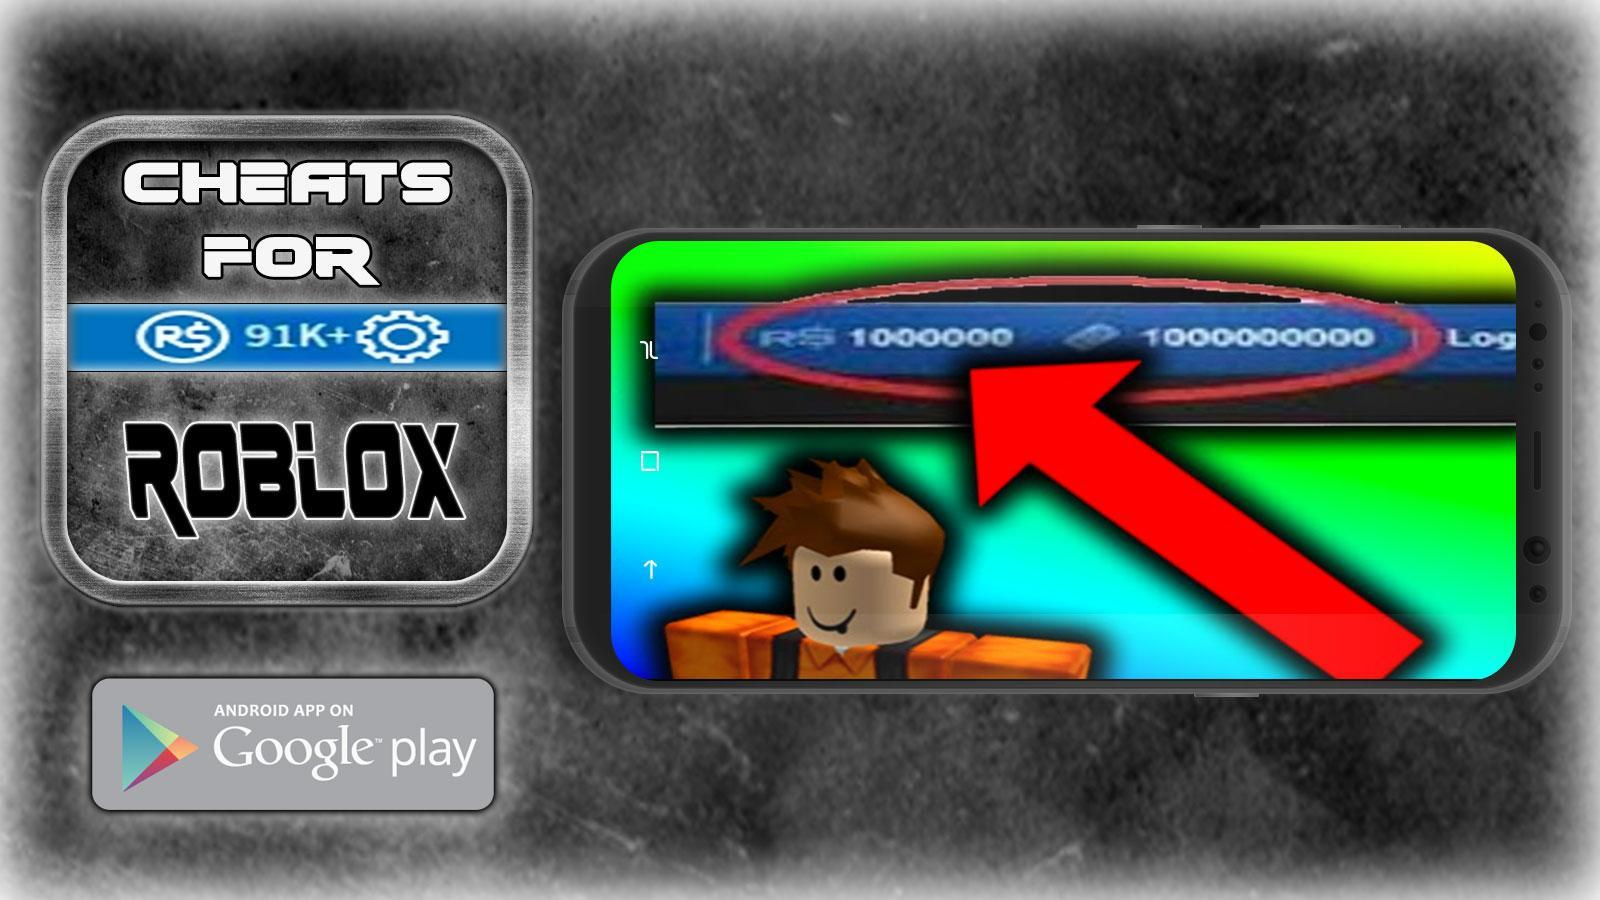 Hacking Rs And Tx On Roblox Easy Youtube - Cheats For Roblox App For Prank For Android Apk Download